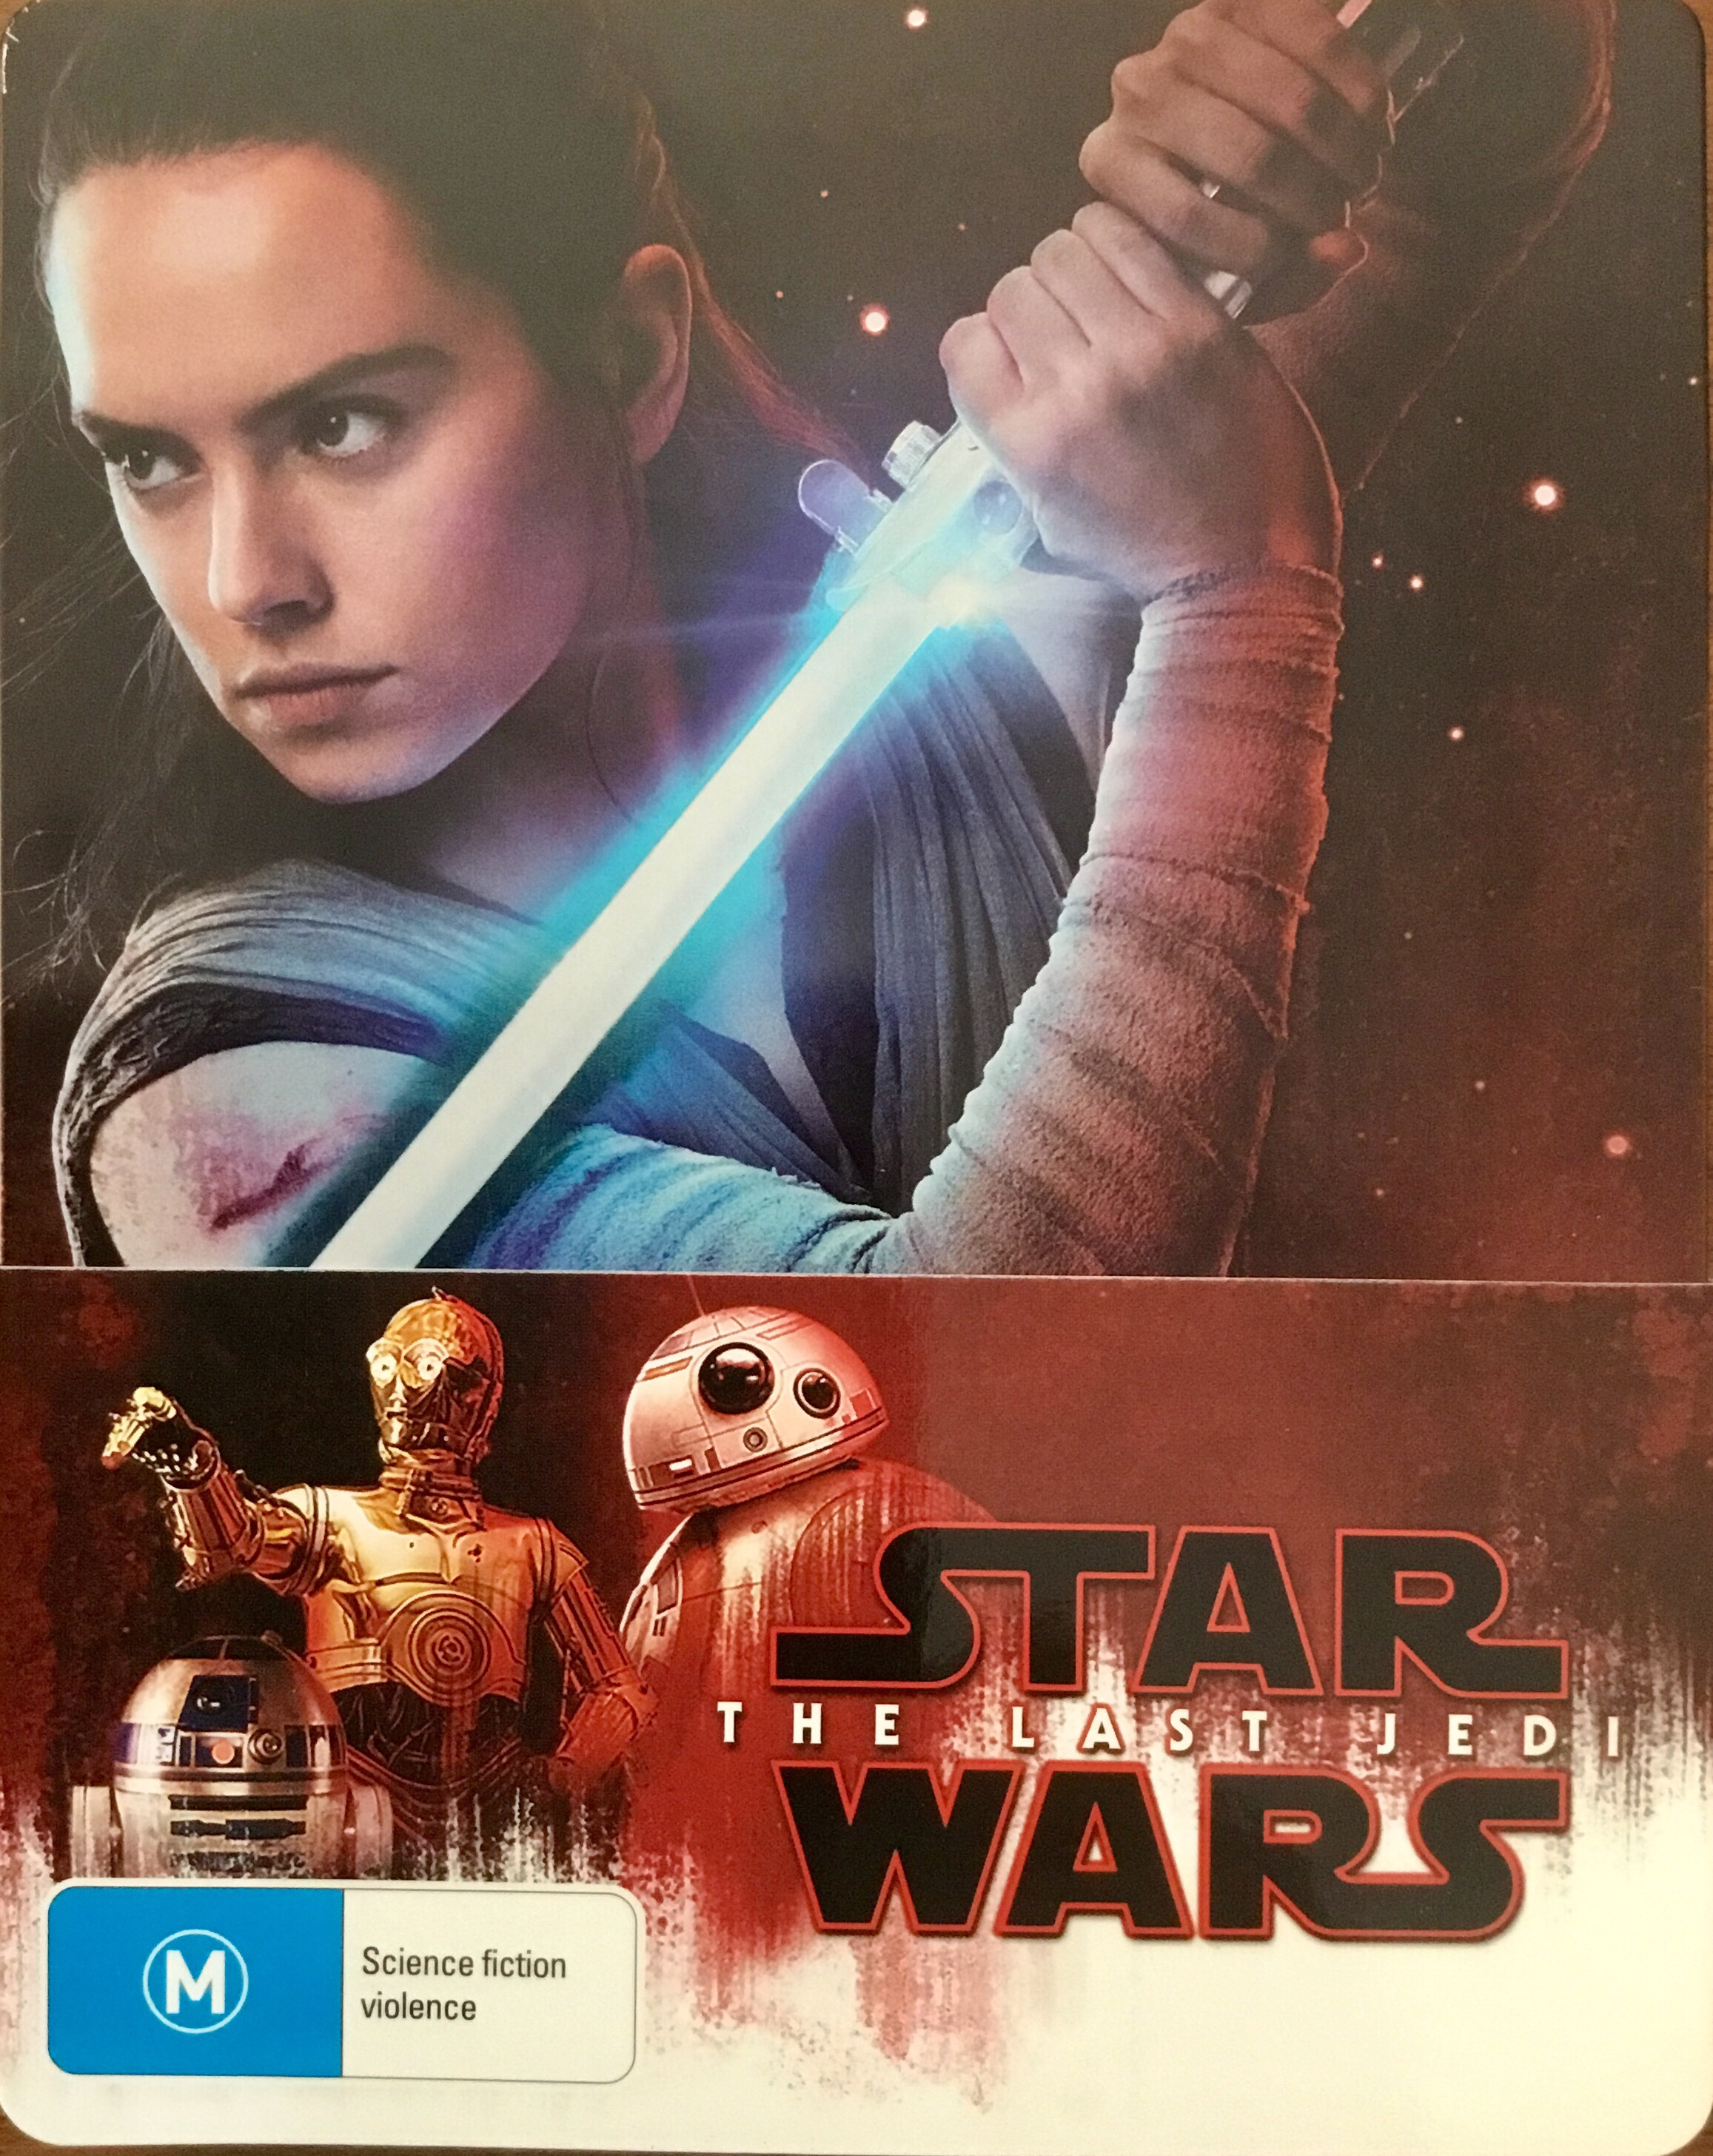 The cover of the Steelbook edition of Star Wars: The Last Jedi